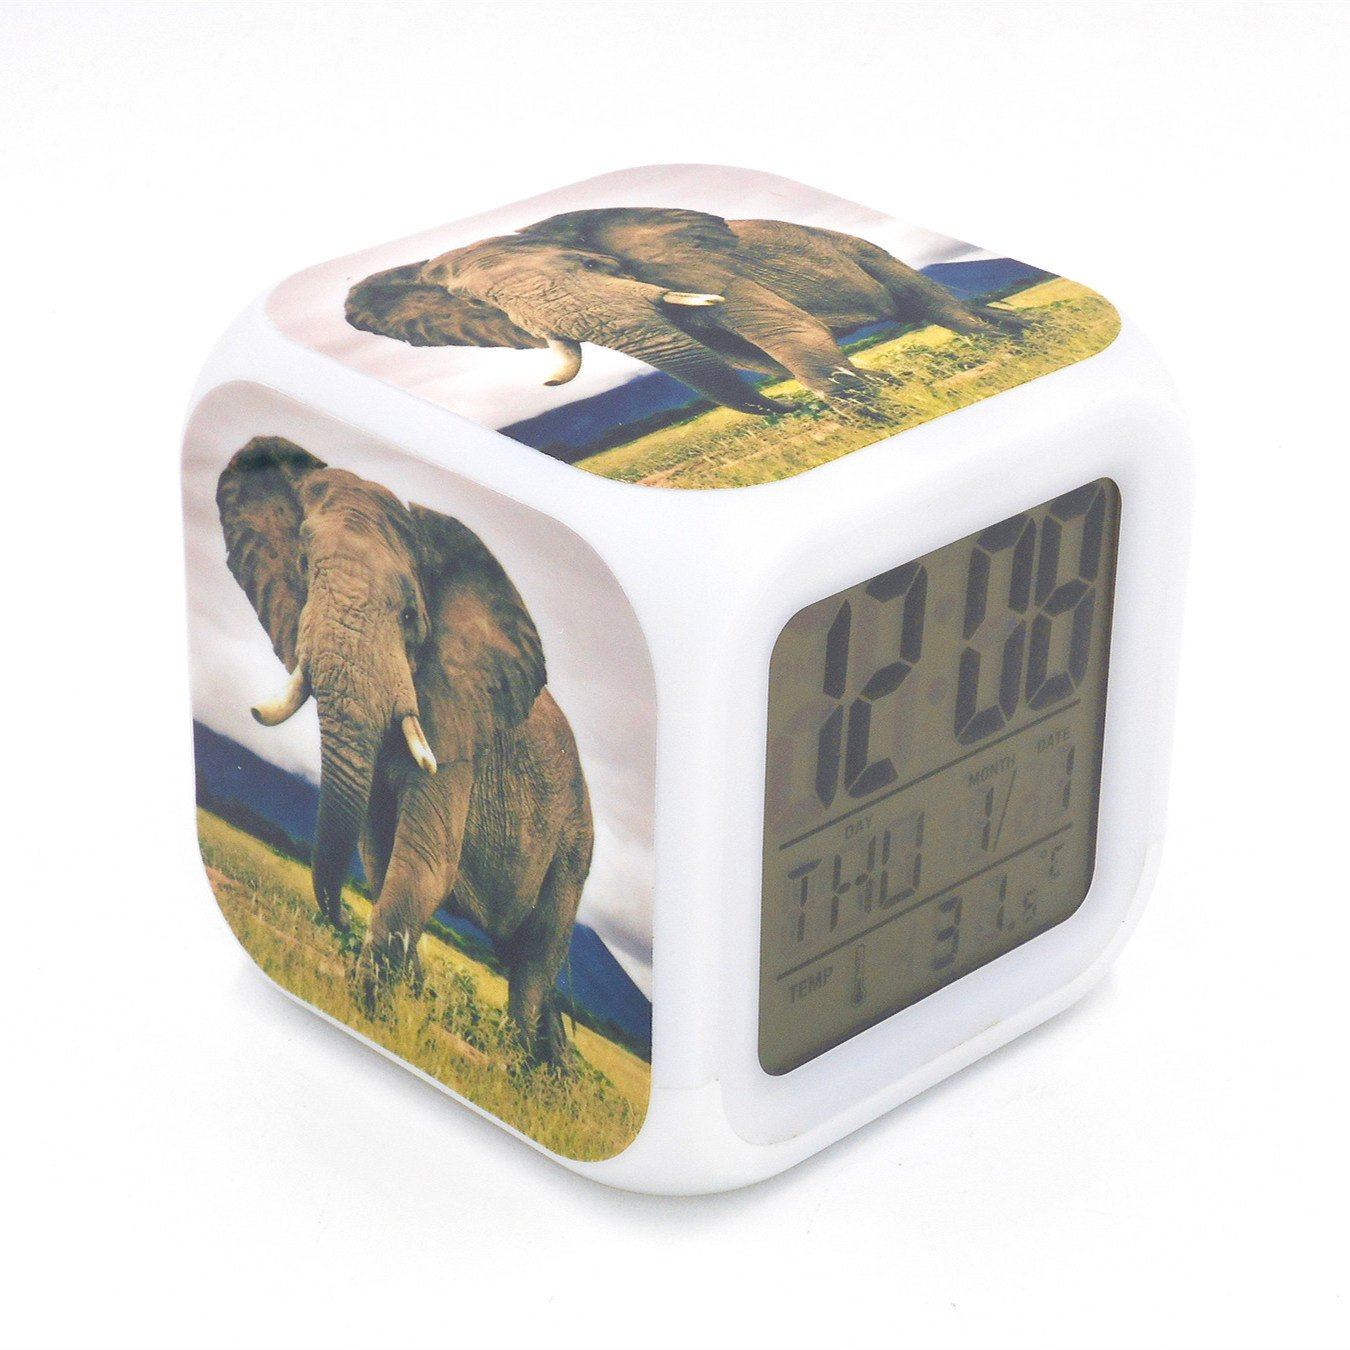 Boyan New Wild Elephant Animal Led Alarm Clock Creative Desk Table Clock Multipurpose Calendar Snooze Glowing Led Digital Alarm Clock for Unisex Adults Kids Toy Gift